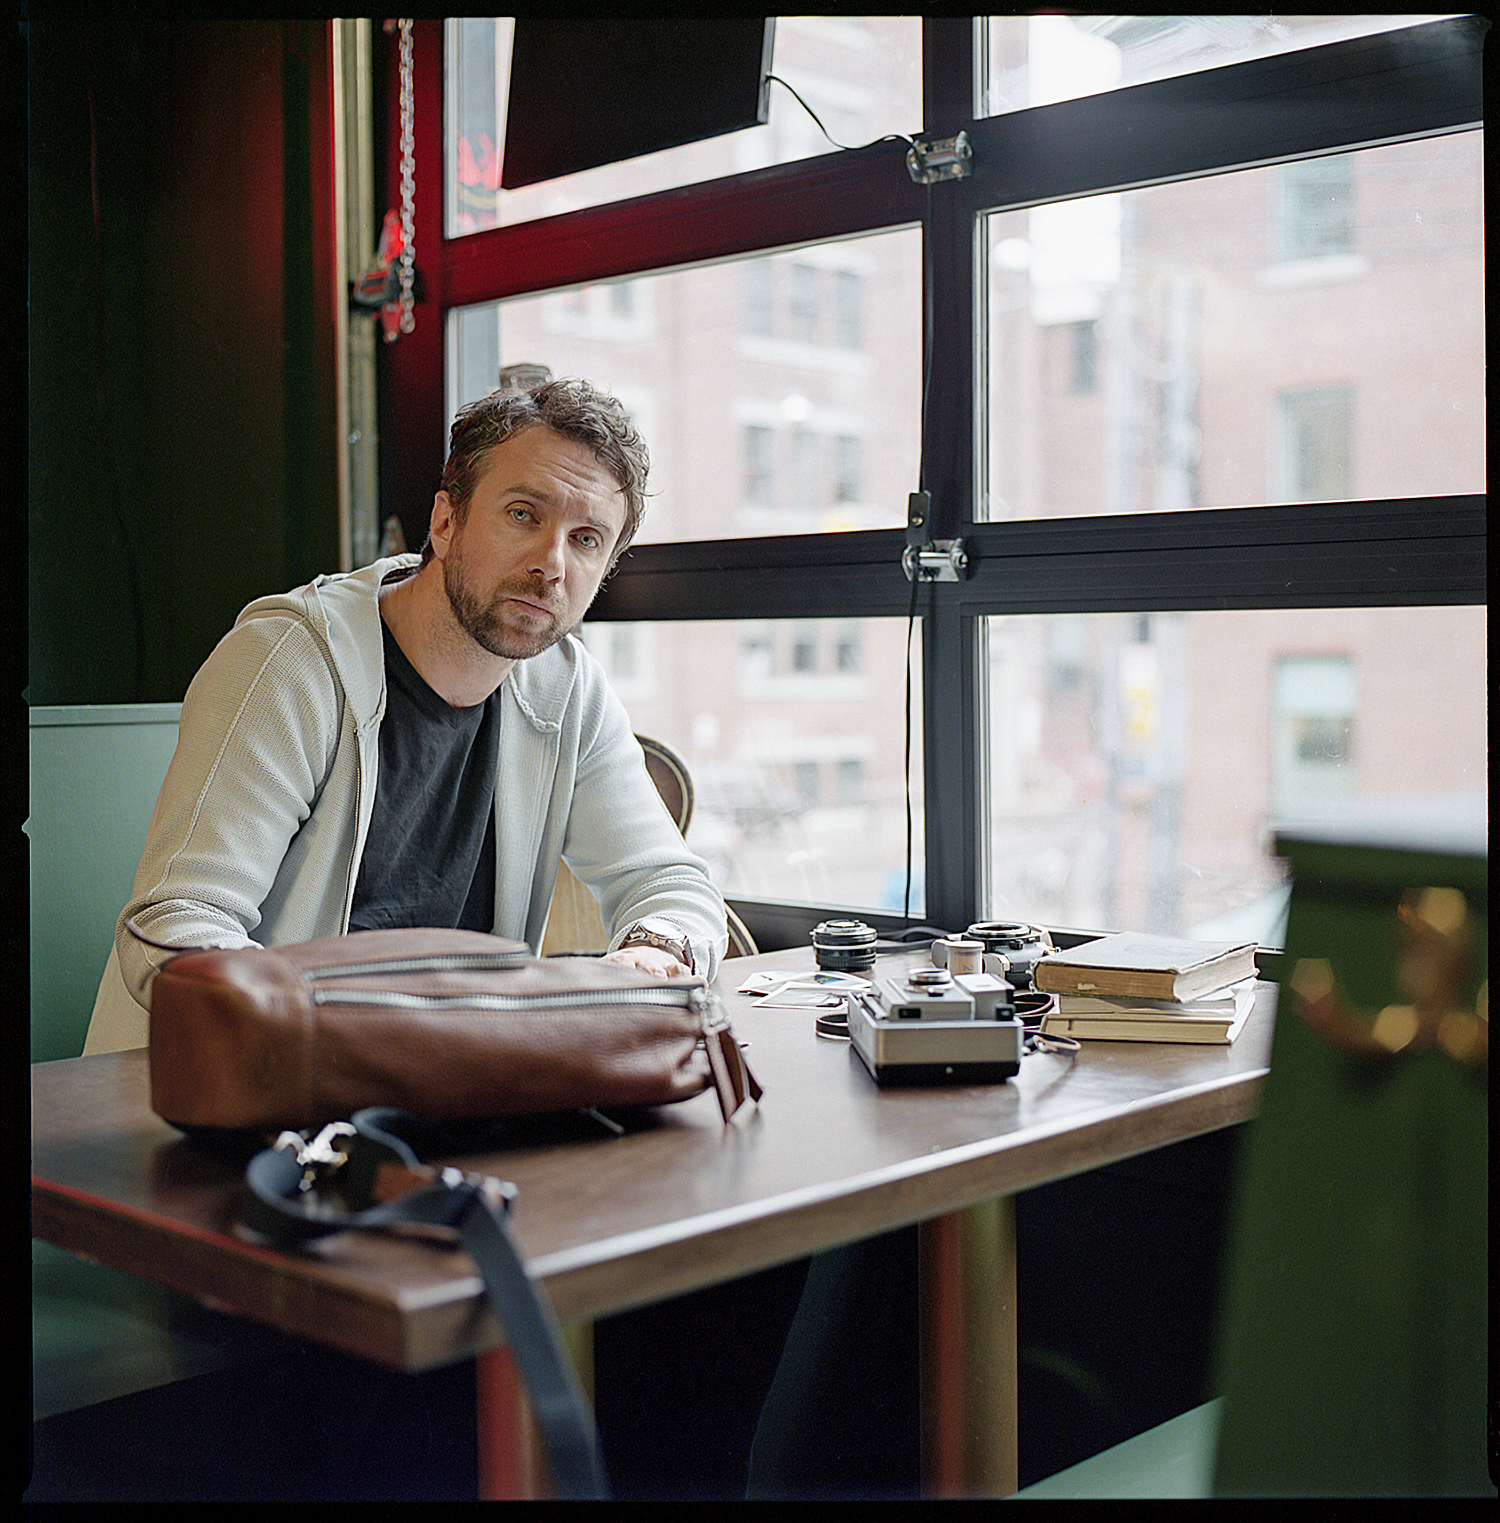 79-Spring-2016-Kodak-Portra-400_Colin-Lead-singer-of-the-trews-portrait-shot-on-film-by-toronto-analog-portrait-photographer_Natural-Light-Window-Portrait.JPG